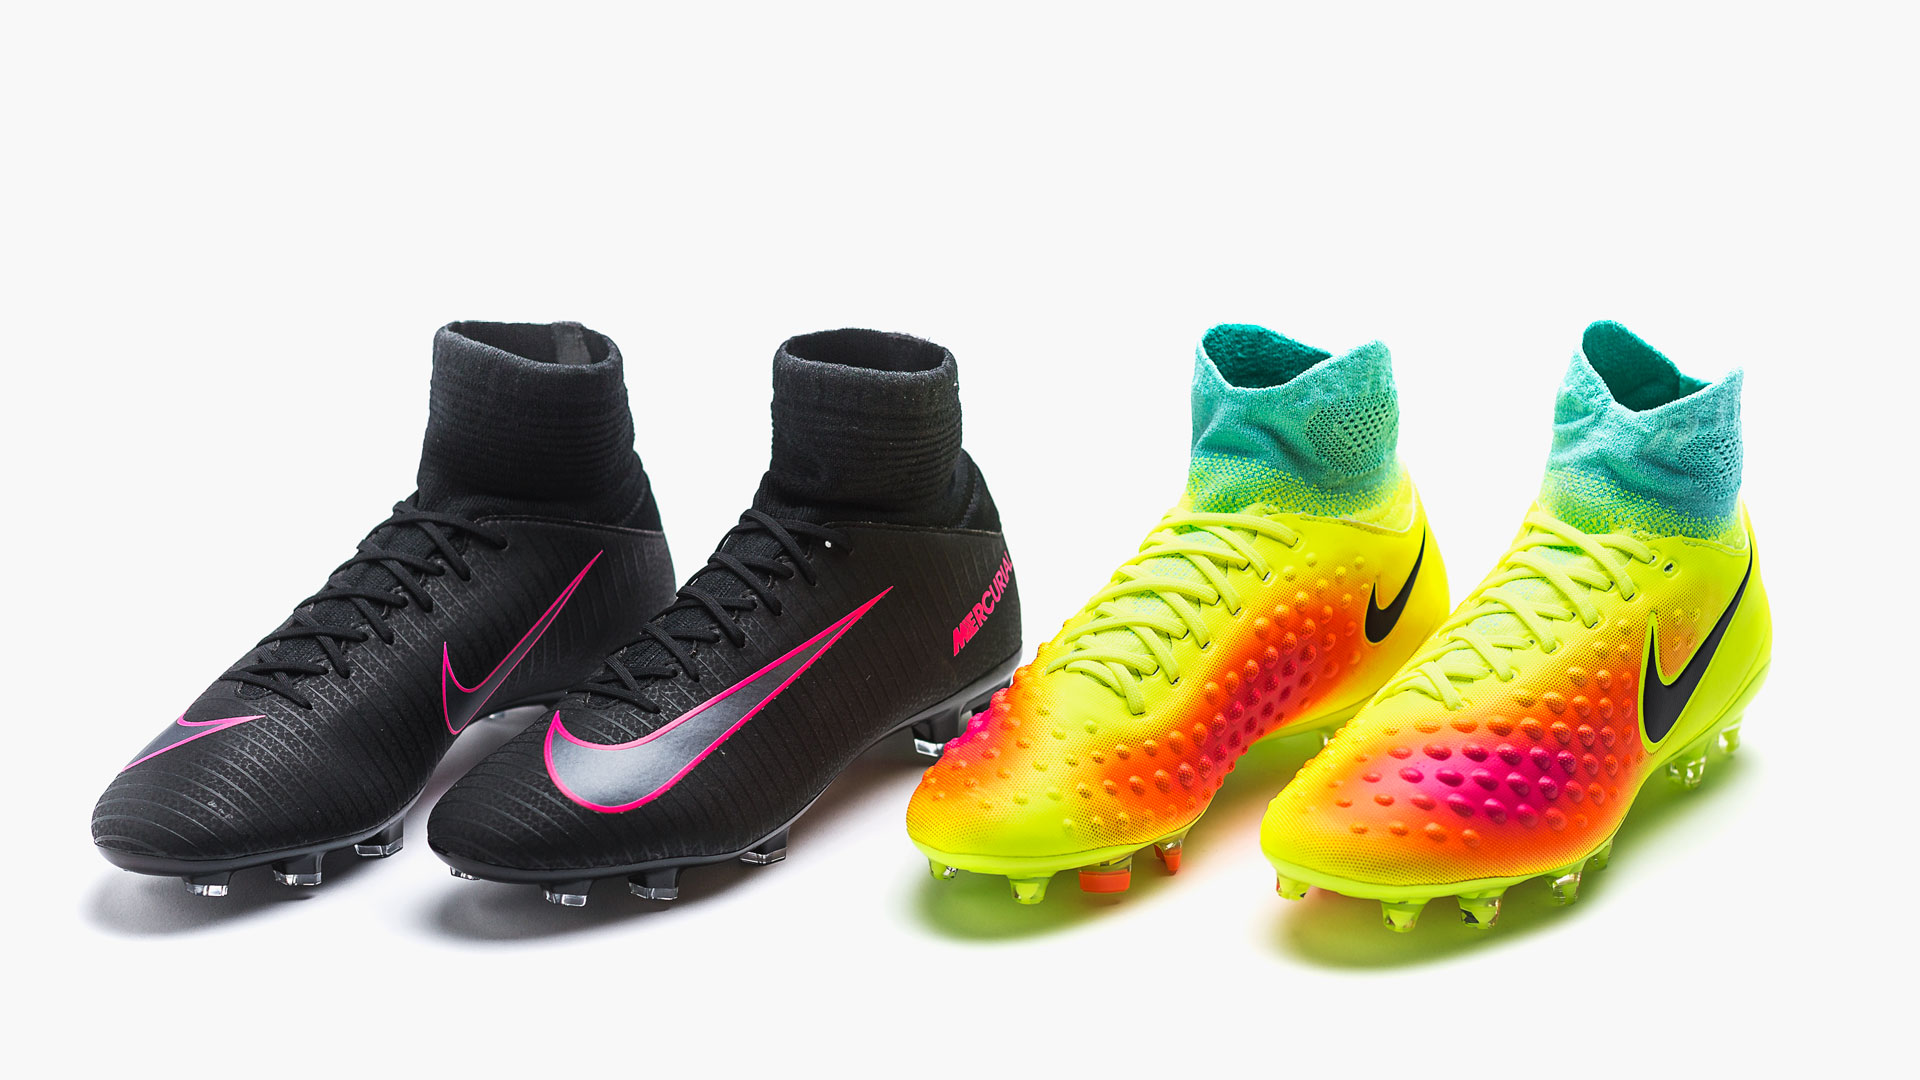 new style 76c6a 6e584 Get Nike football boots with sock for kids